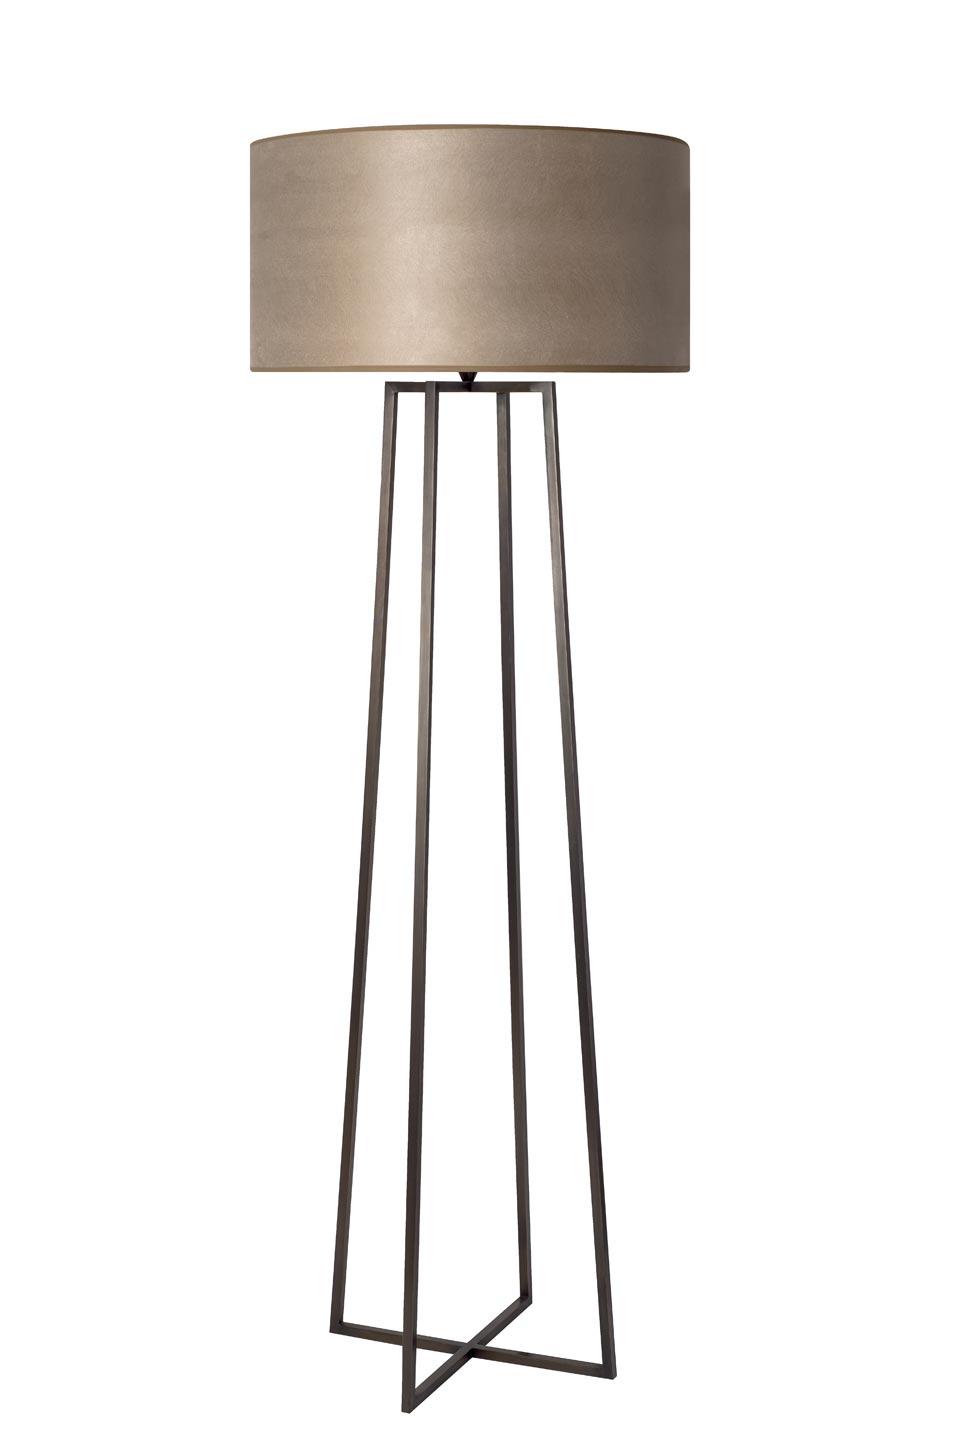 but t gary colzani everything large please product floor lamp porada ordinary small by